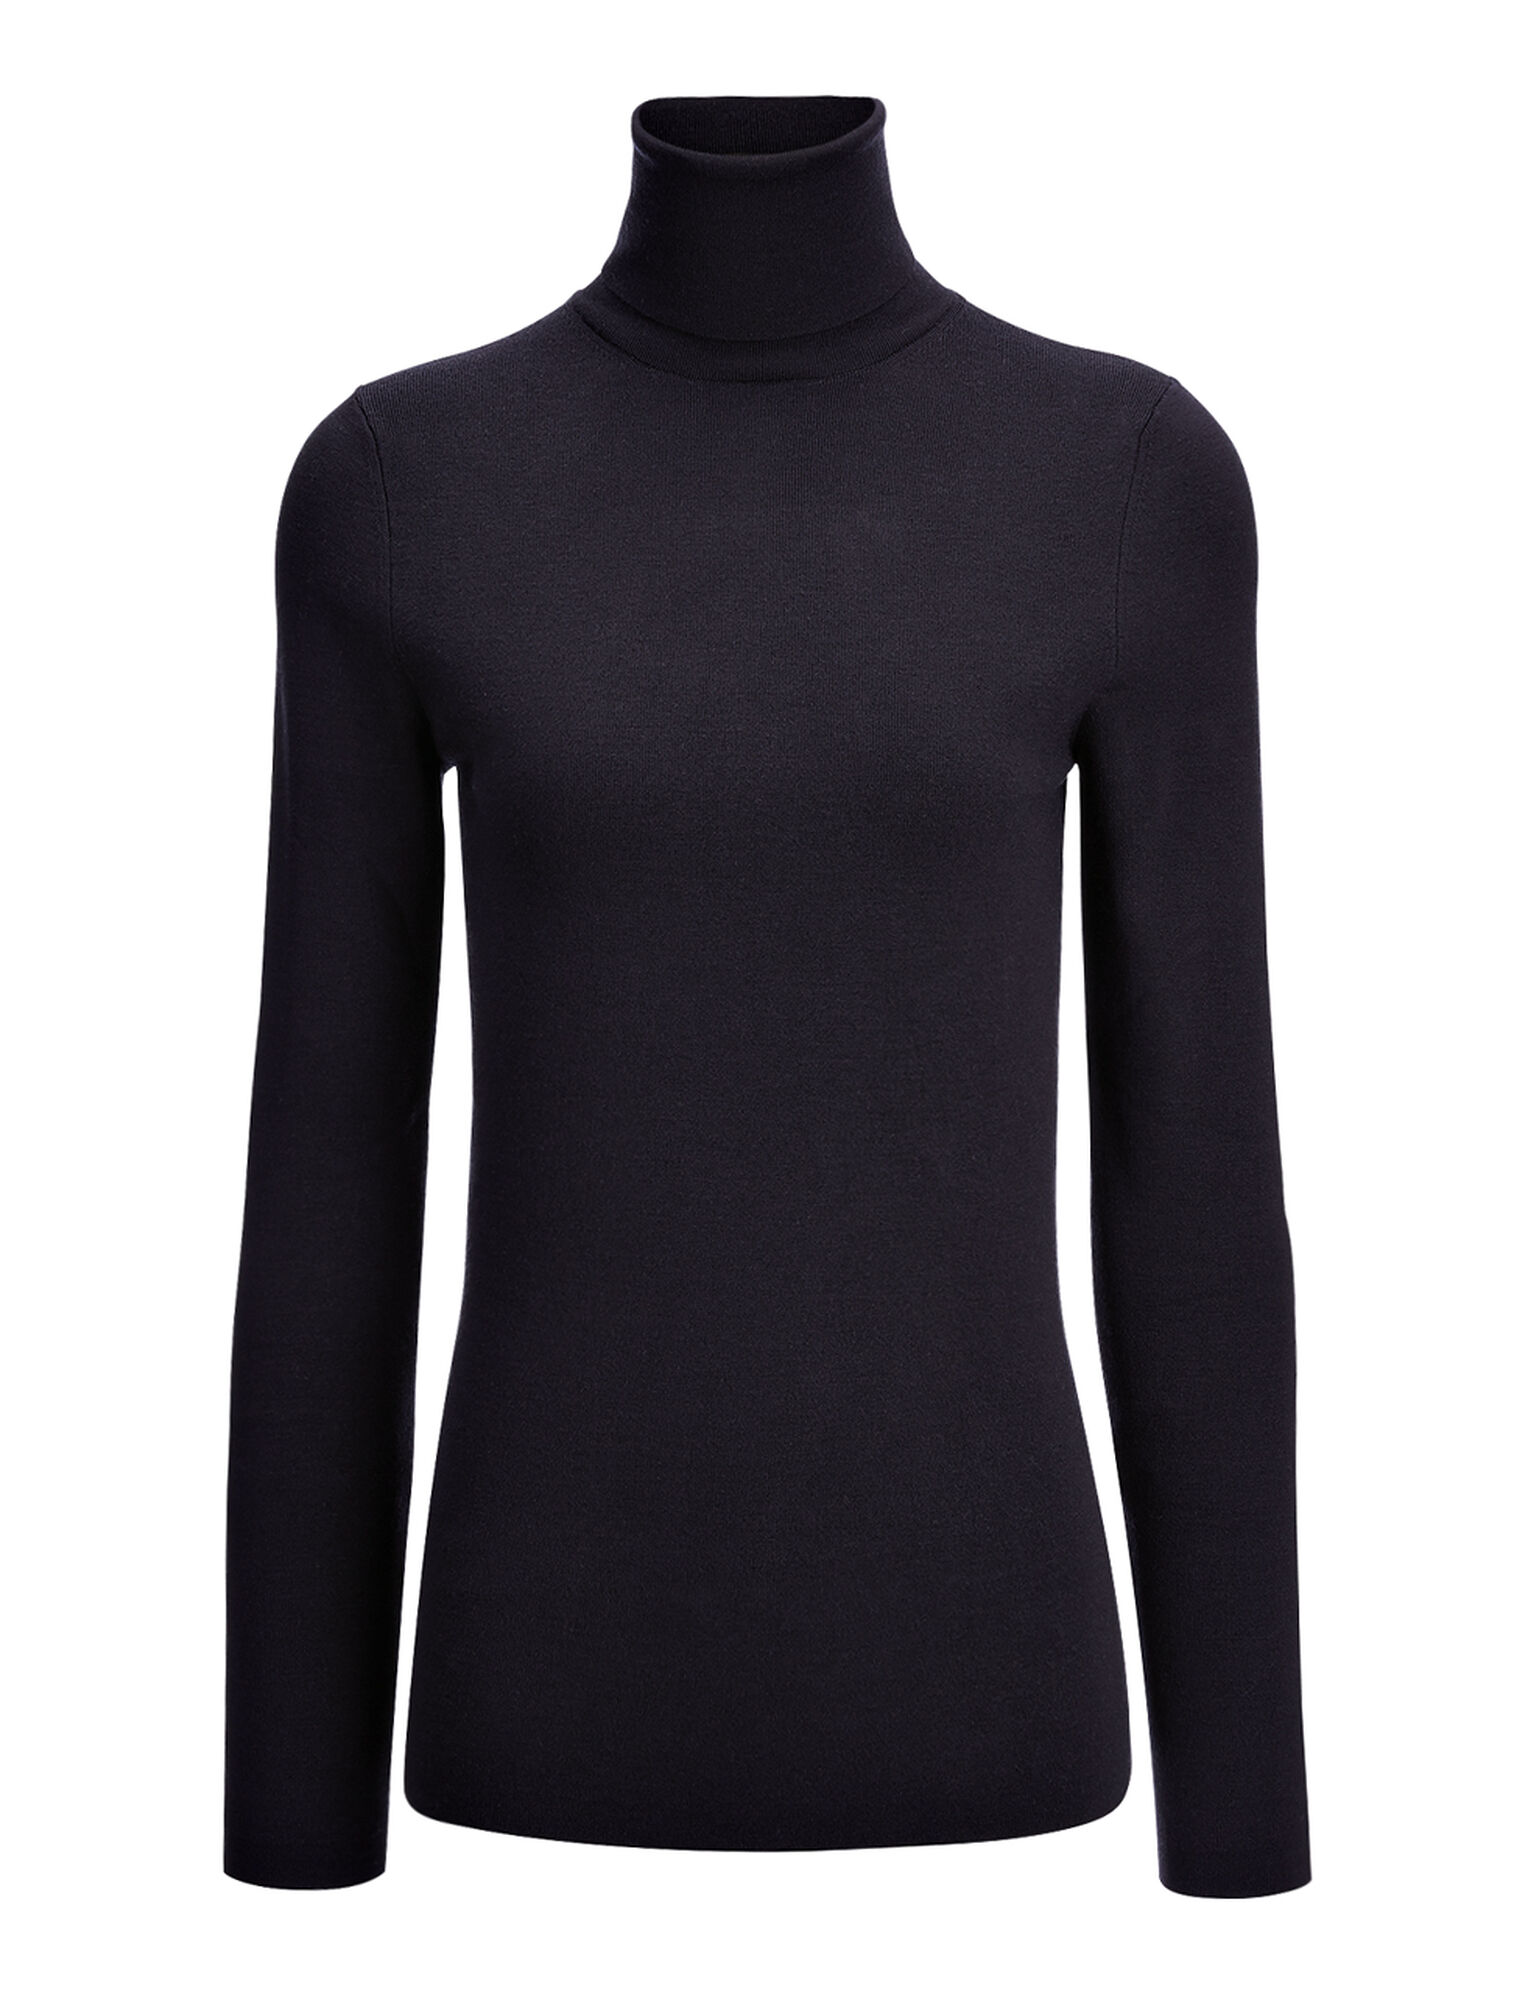 Joseph, Silk Stretch Roll Neck, in NAVY